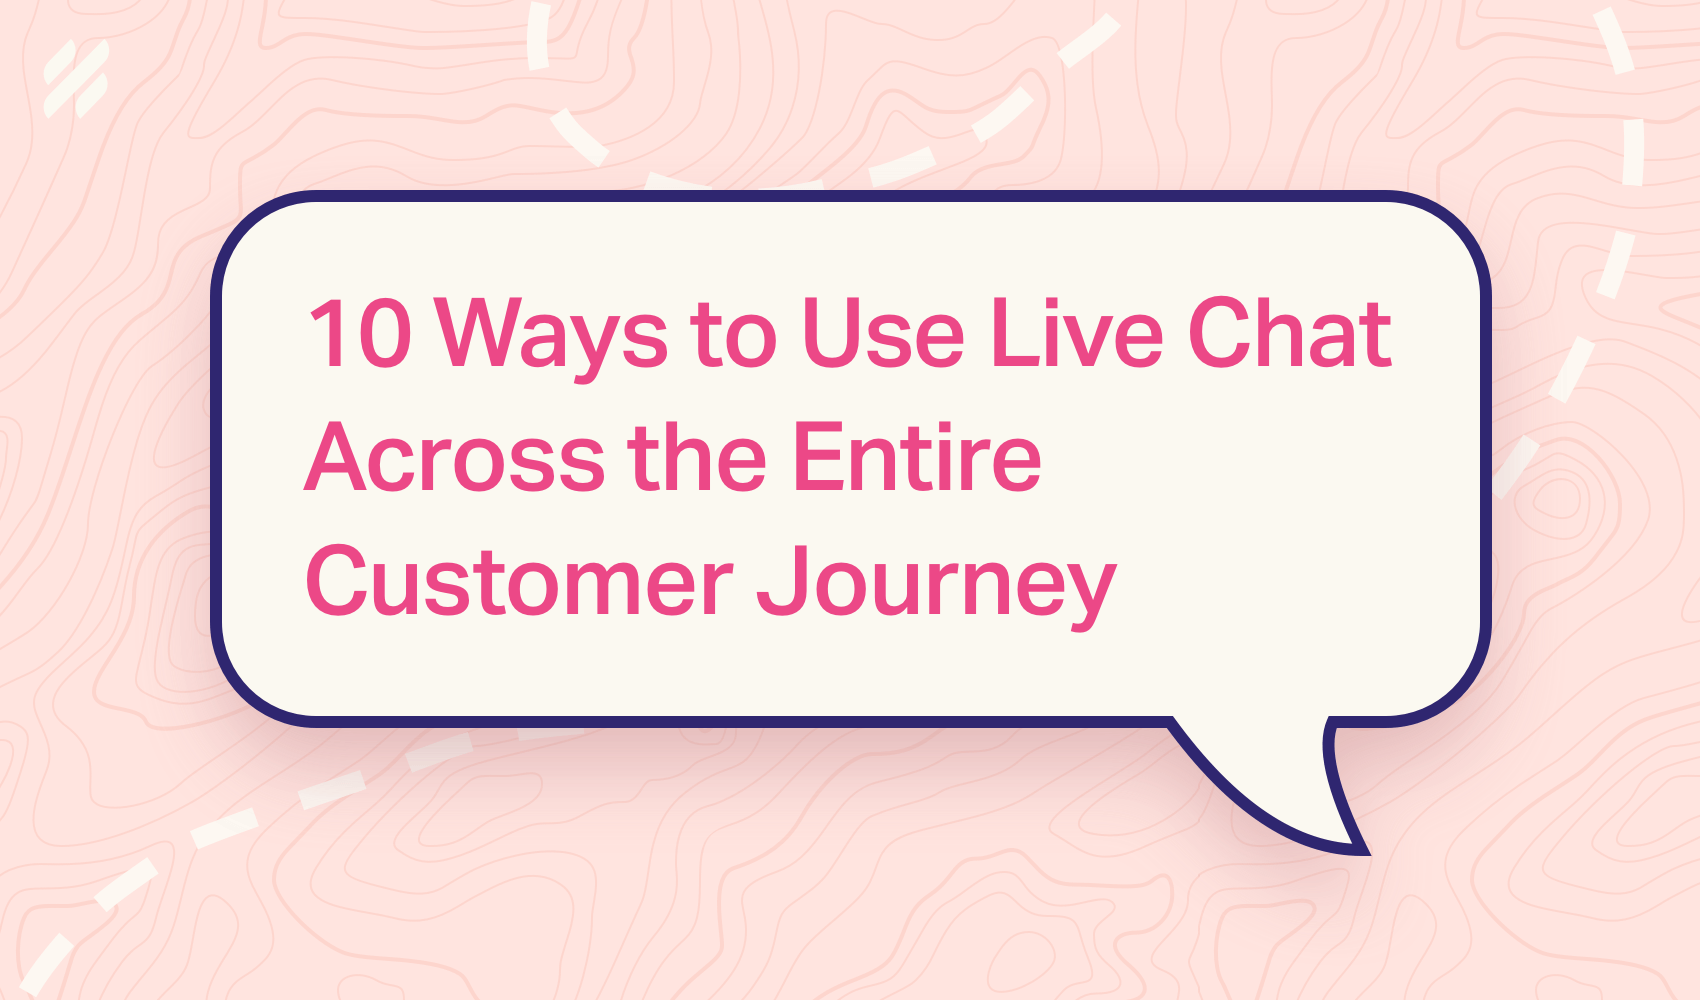 10 Ways to Use Live Chat Across the Entire Customer Journey